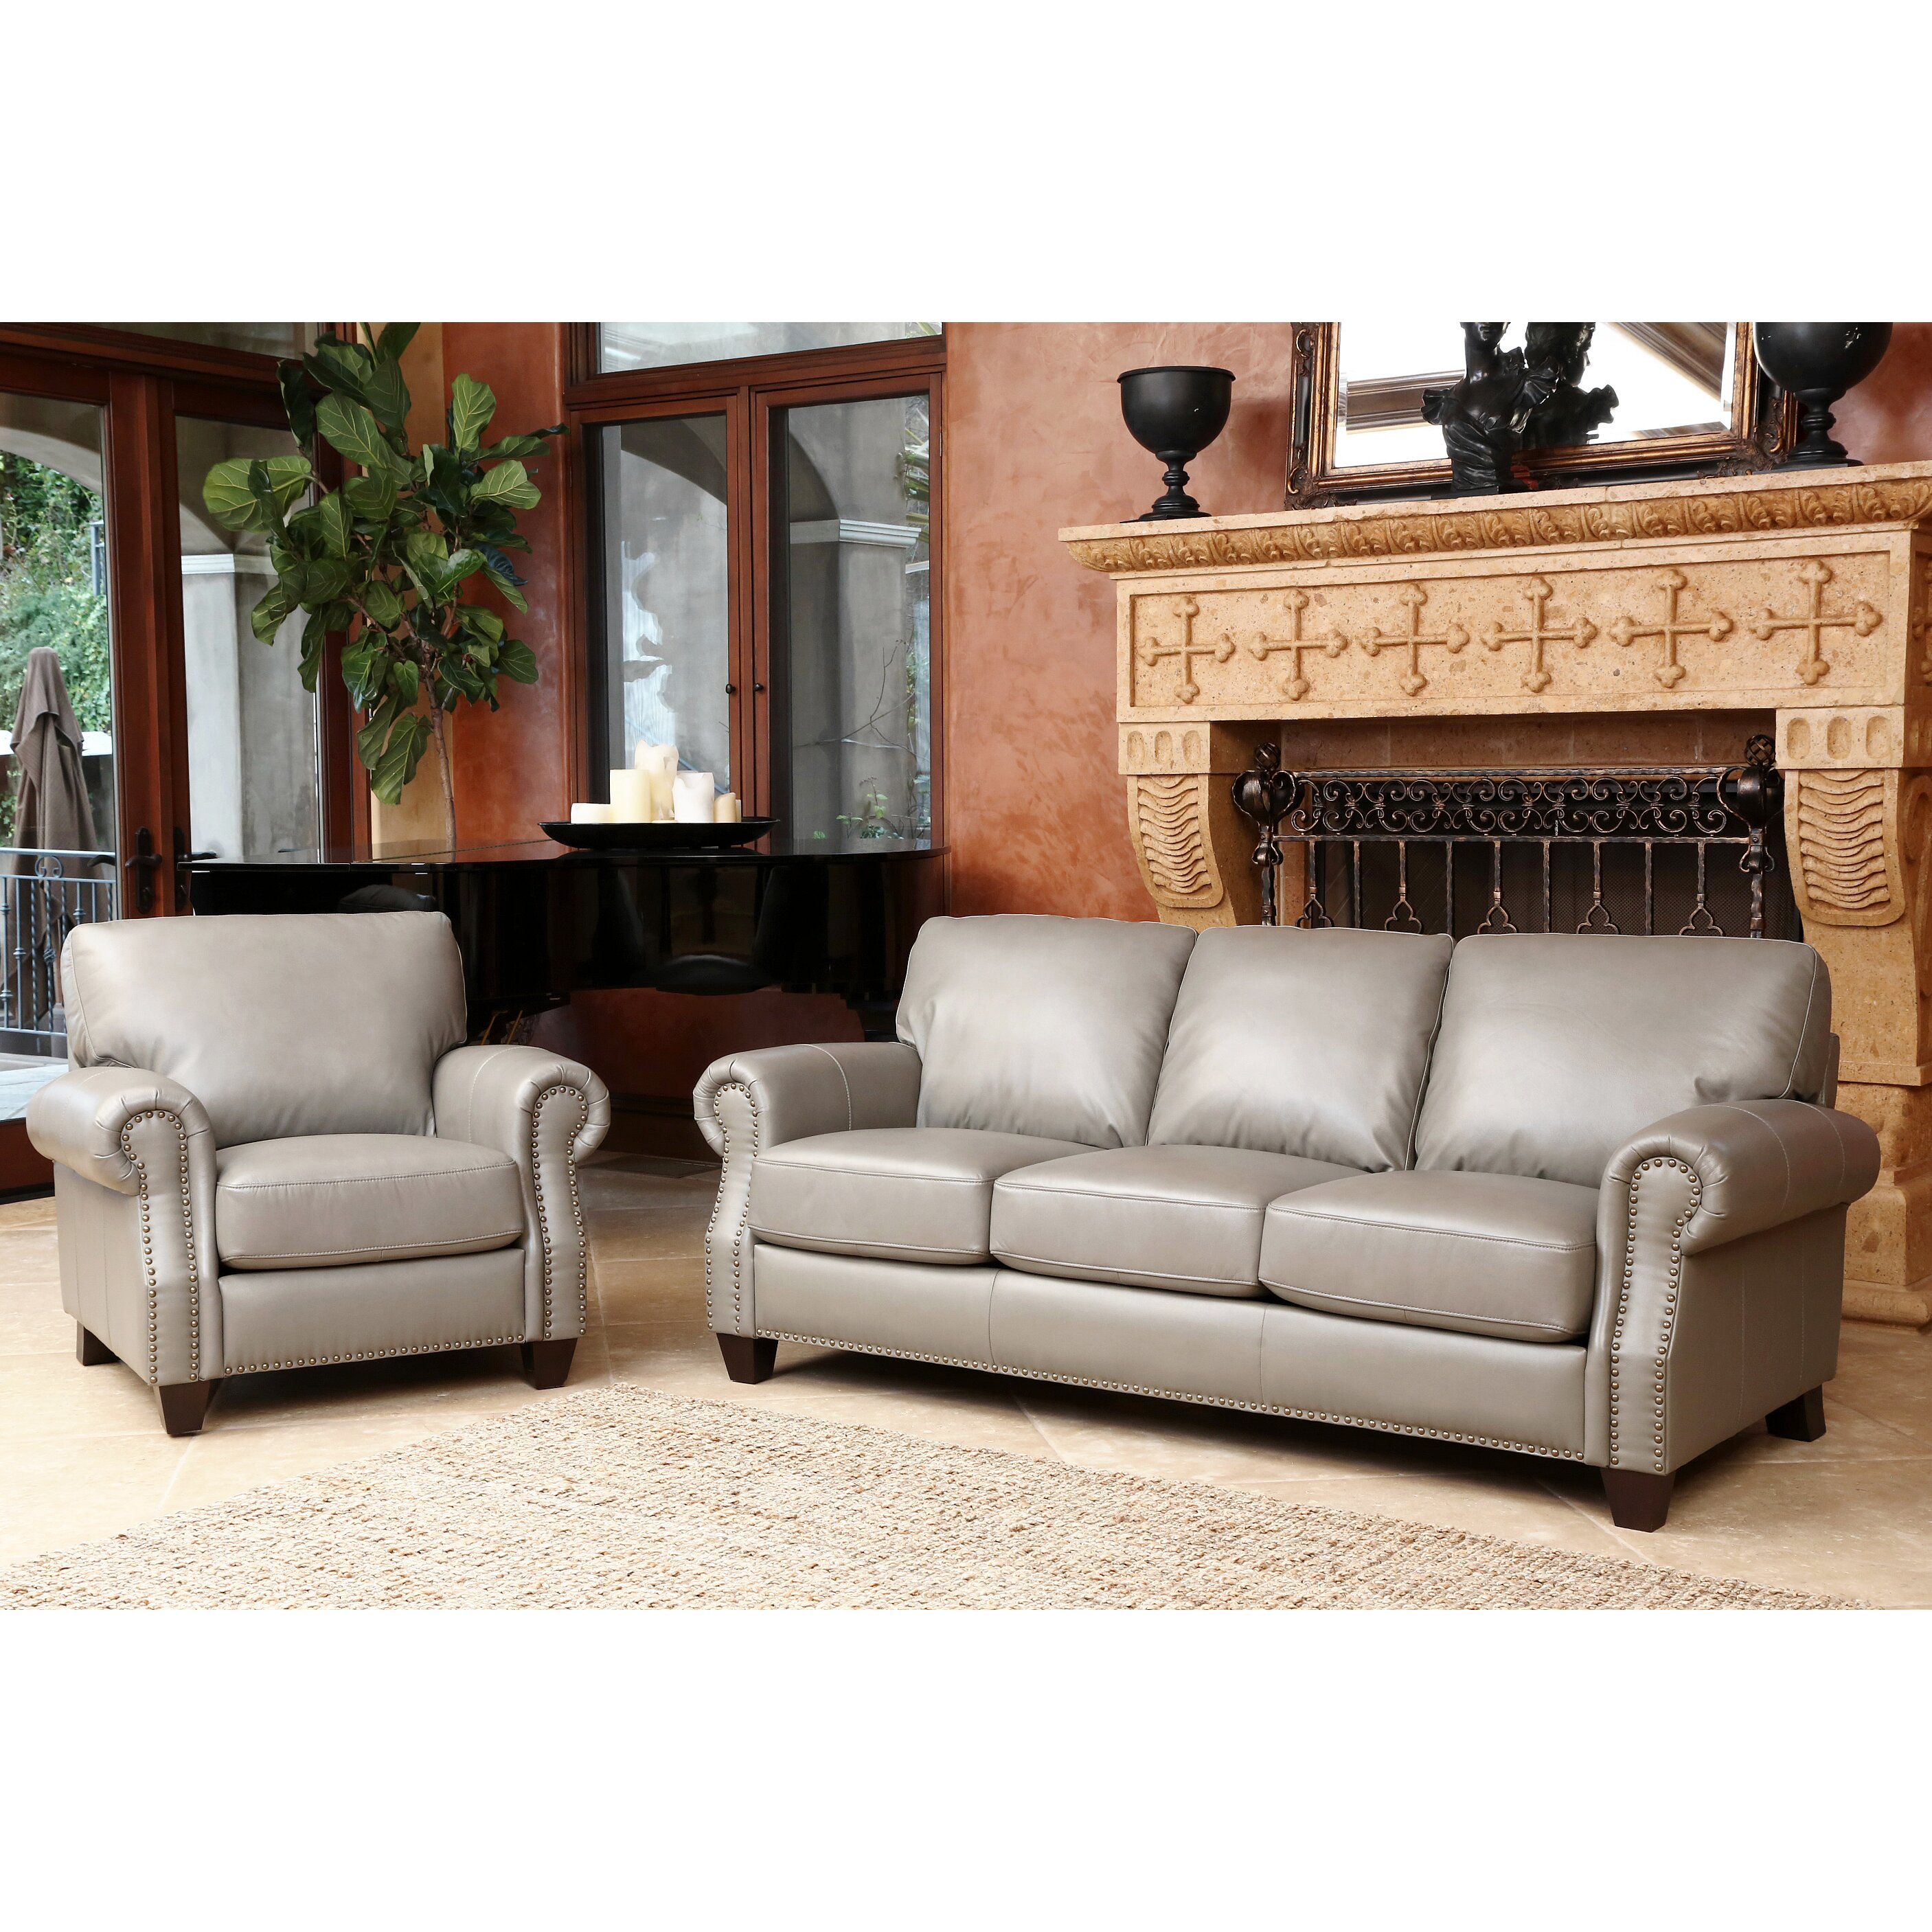 Darby home co cairnbrook 3 piece leather living room set for Living room 3 piece sets